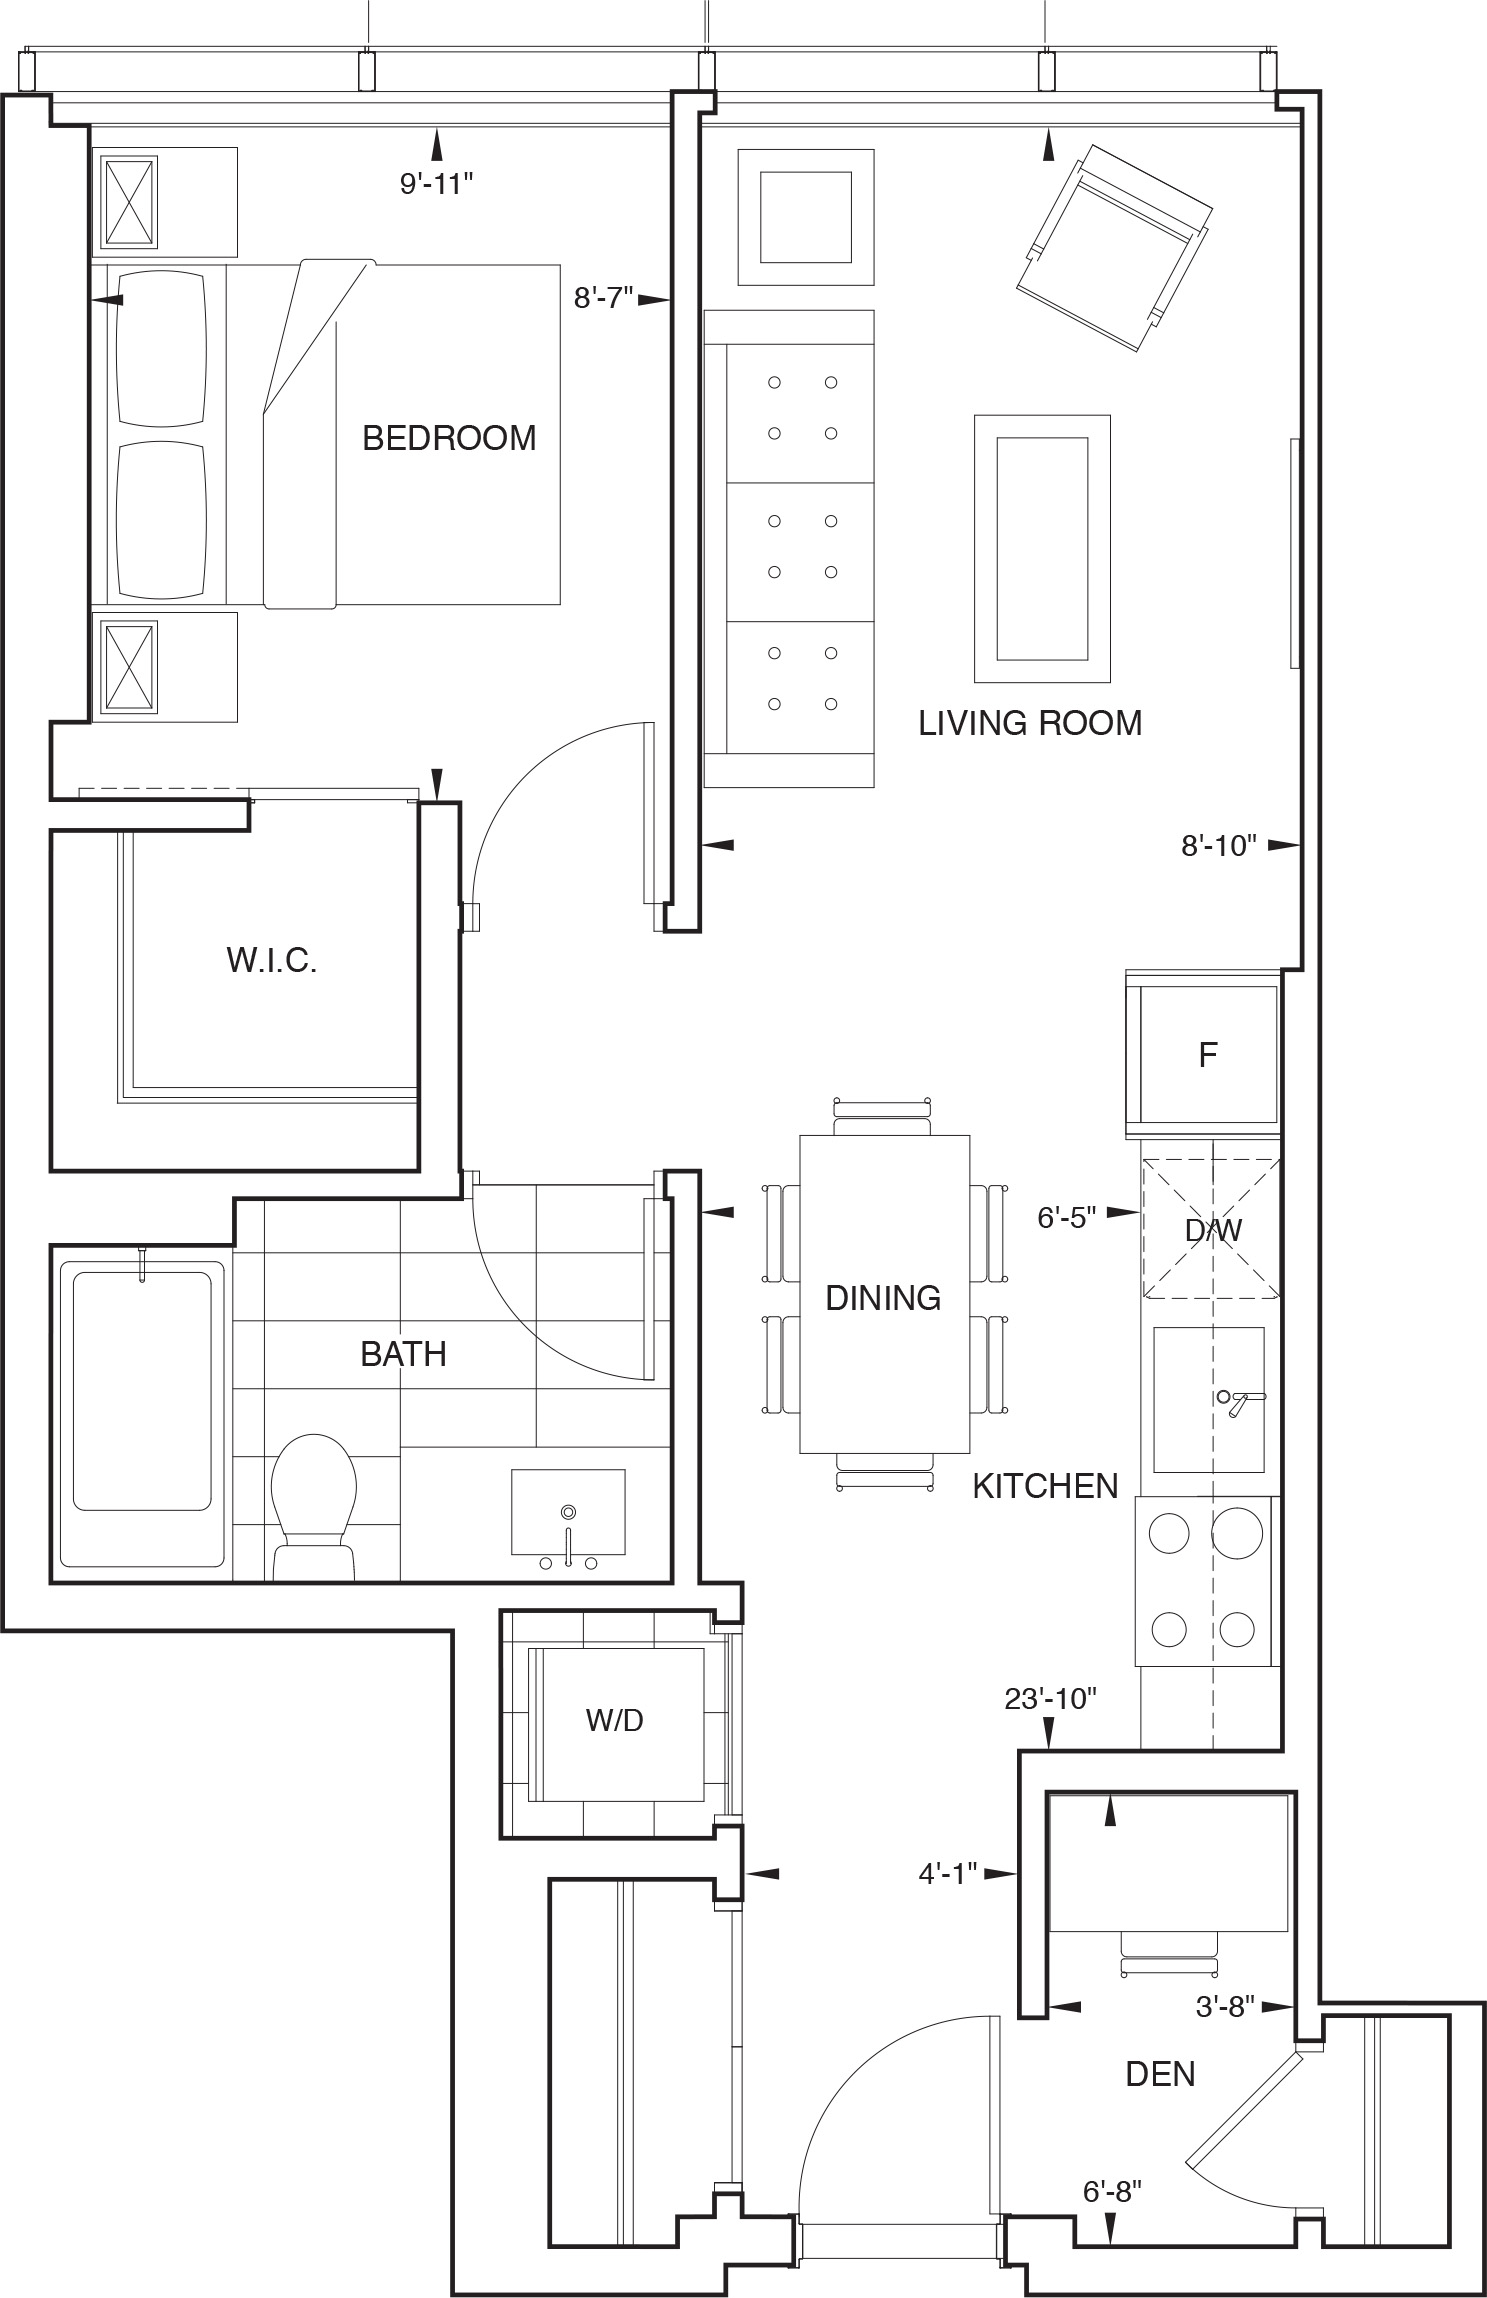 Floorplan for SKY Residence G